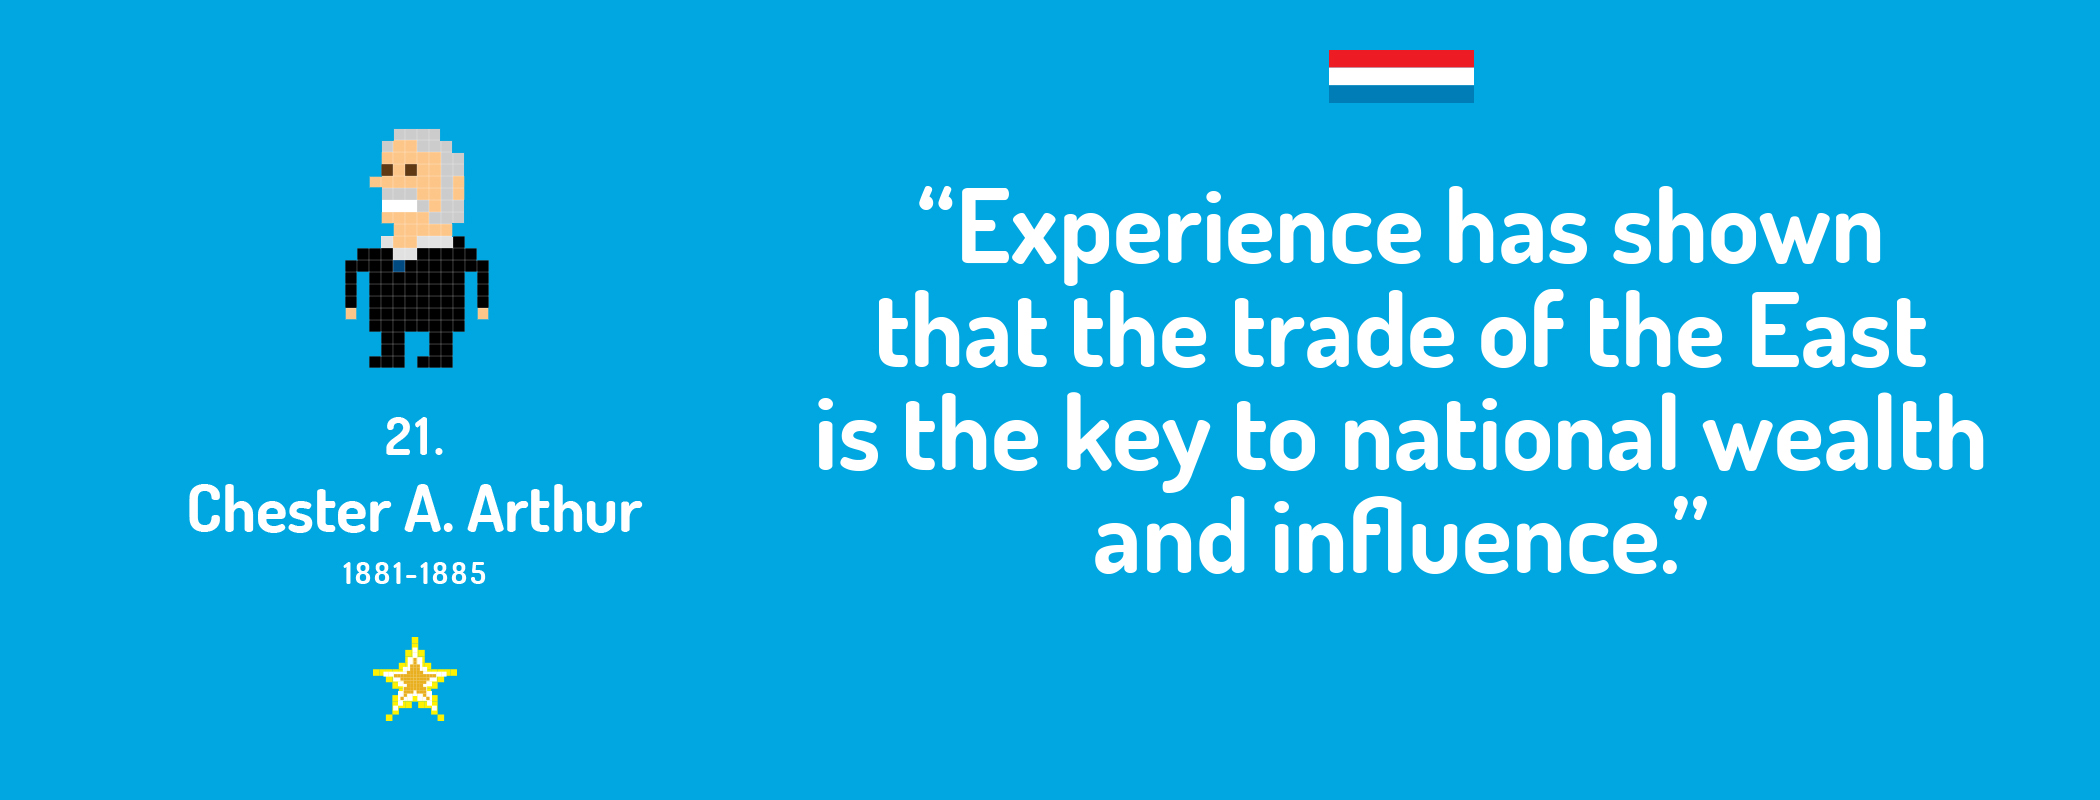 Experience has shown that the trade of the East is the key to national wealth and influence.